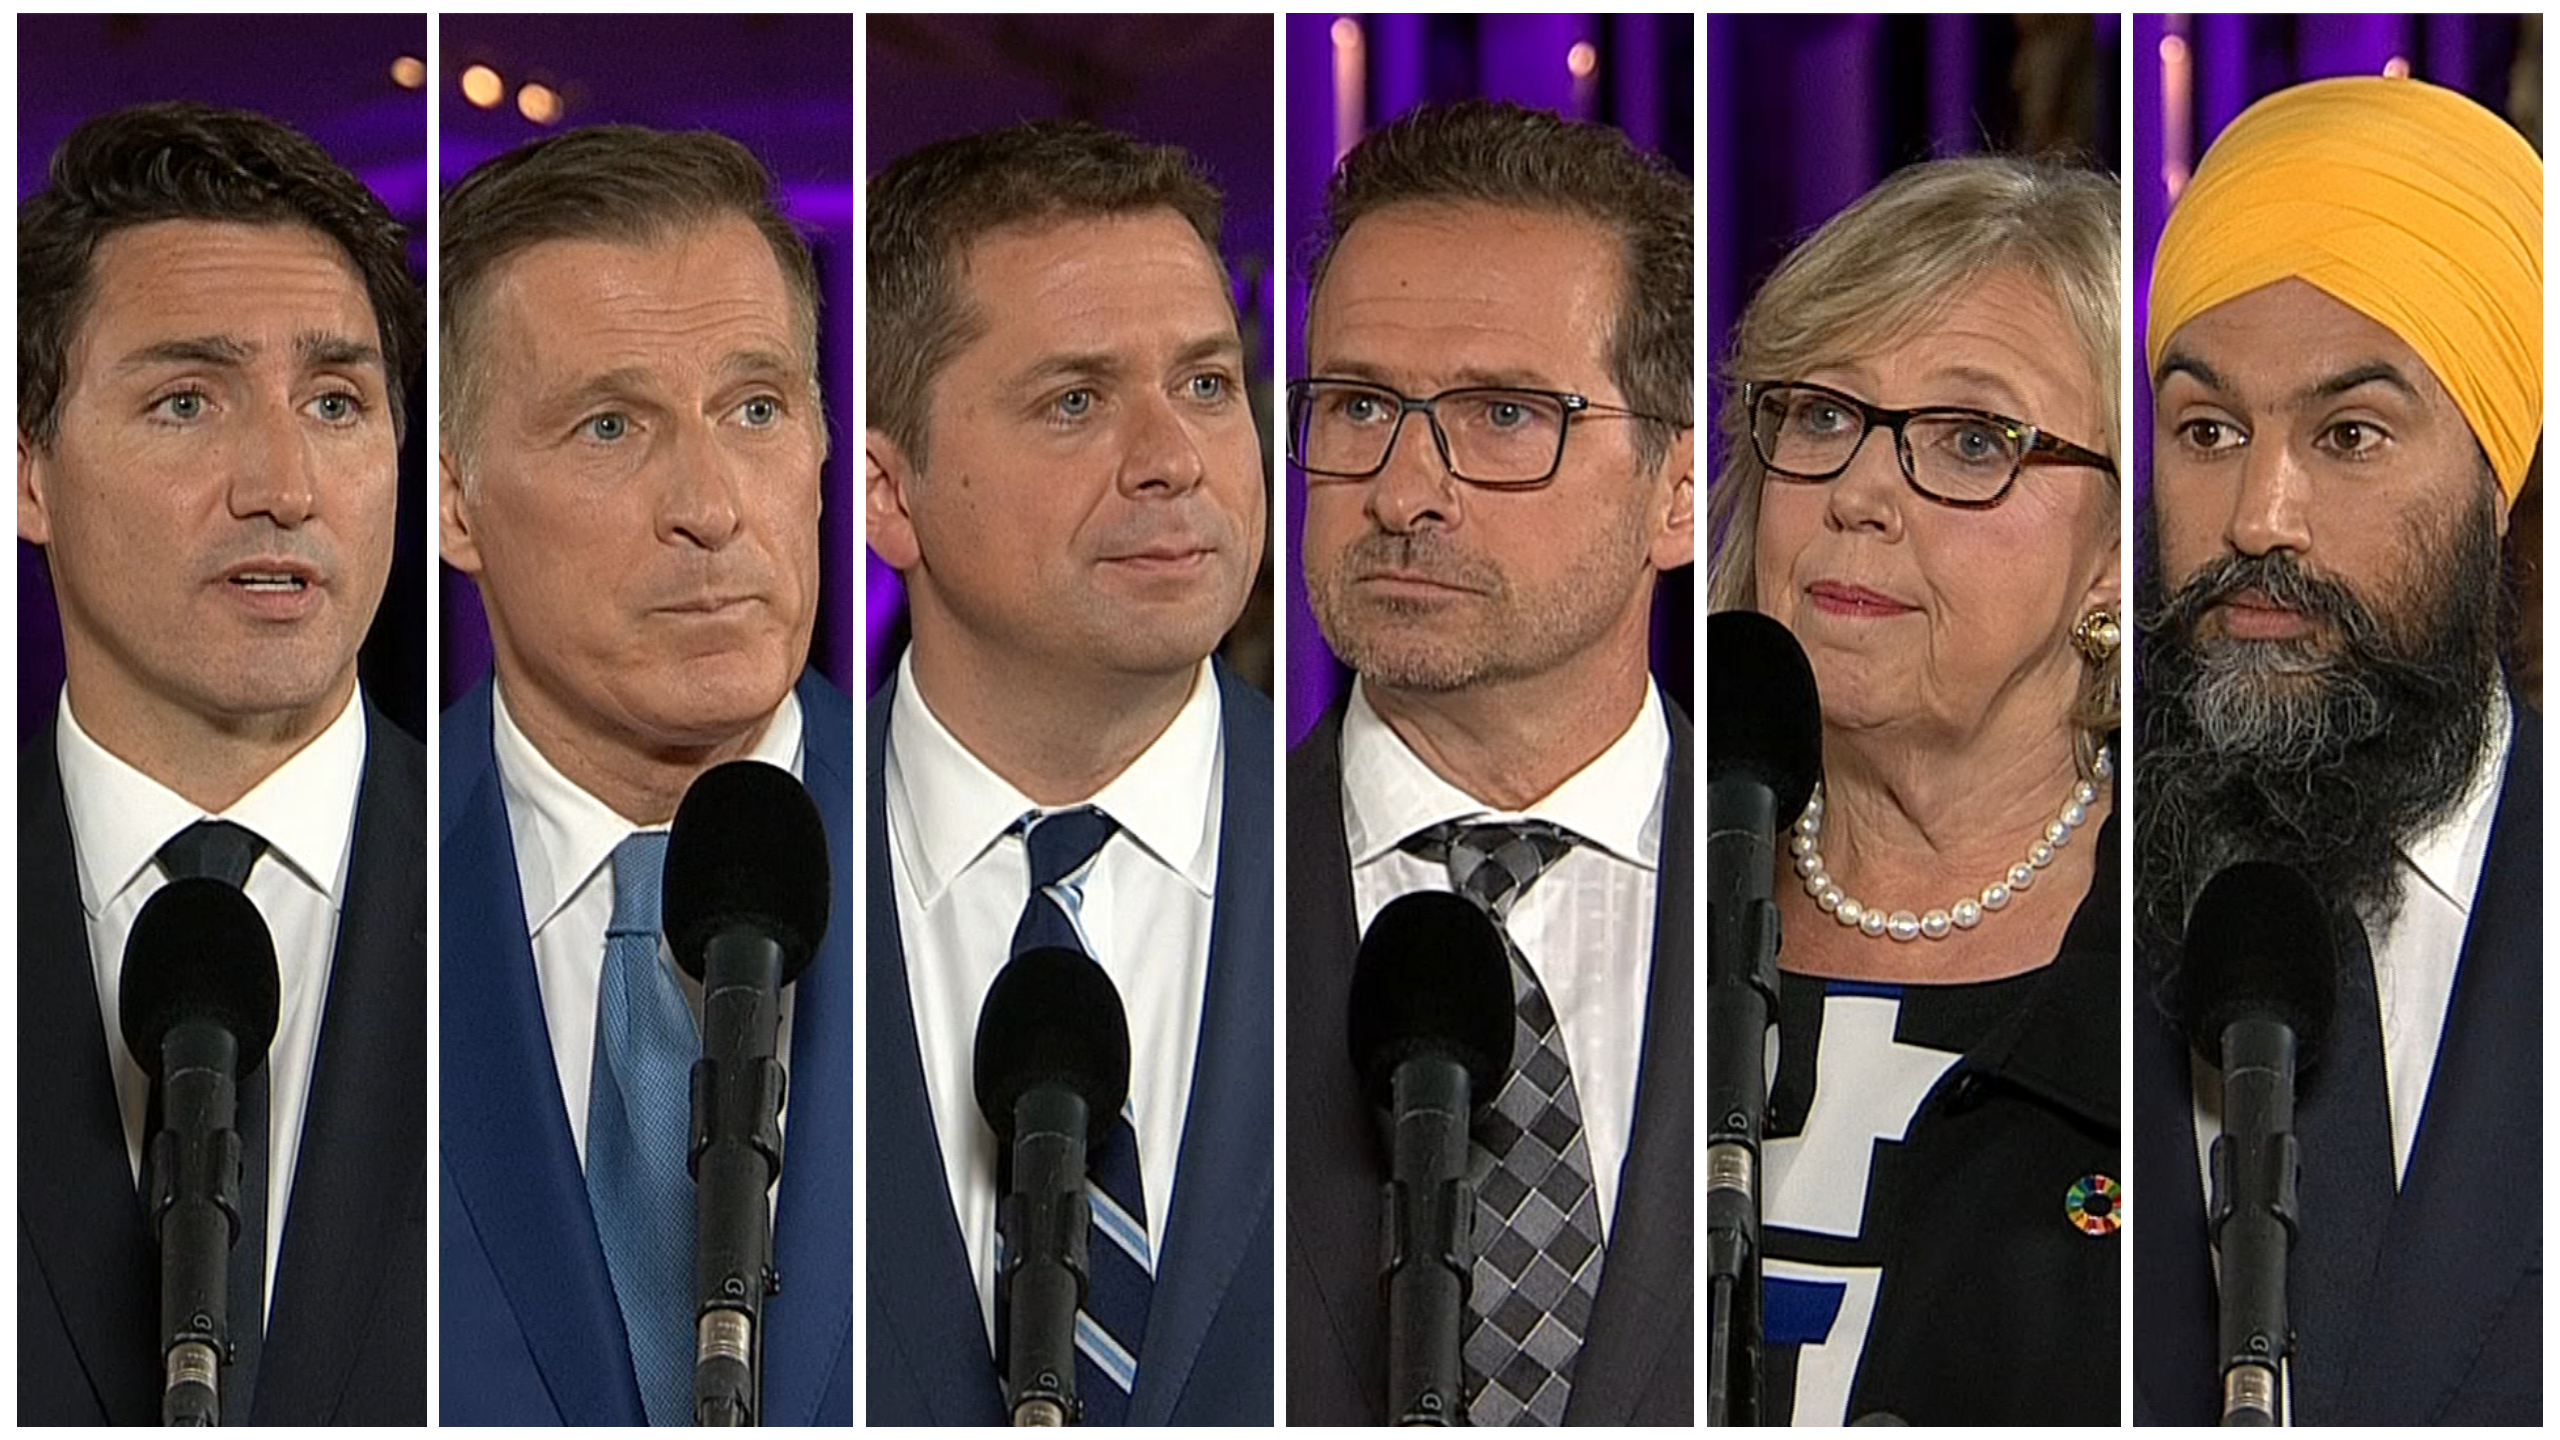 Canada Election A Look At The 2019 Federal Party Leaders